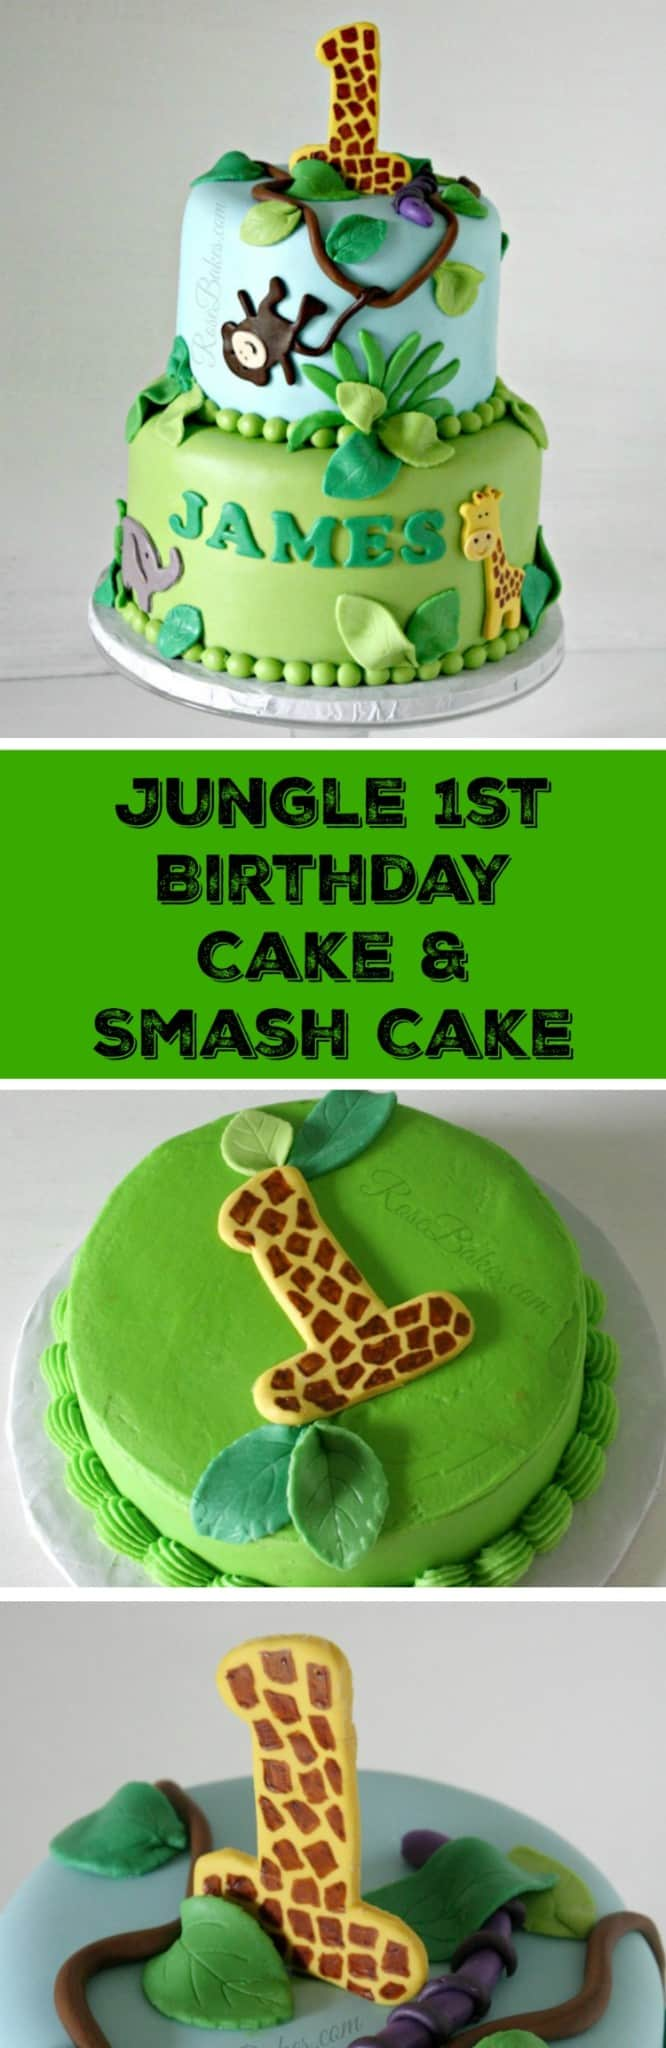 Jungle 1st Birthday Cake Smash Cake Rose Bakes